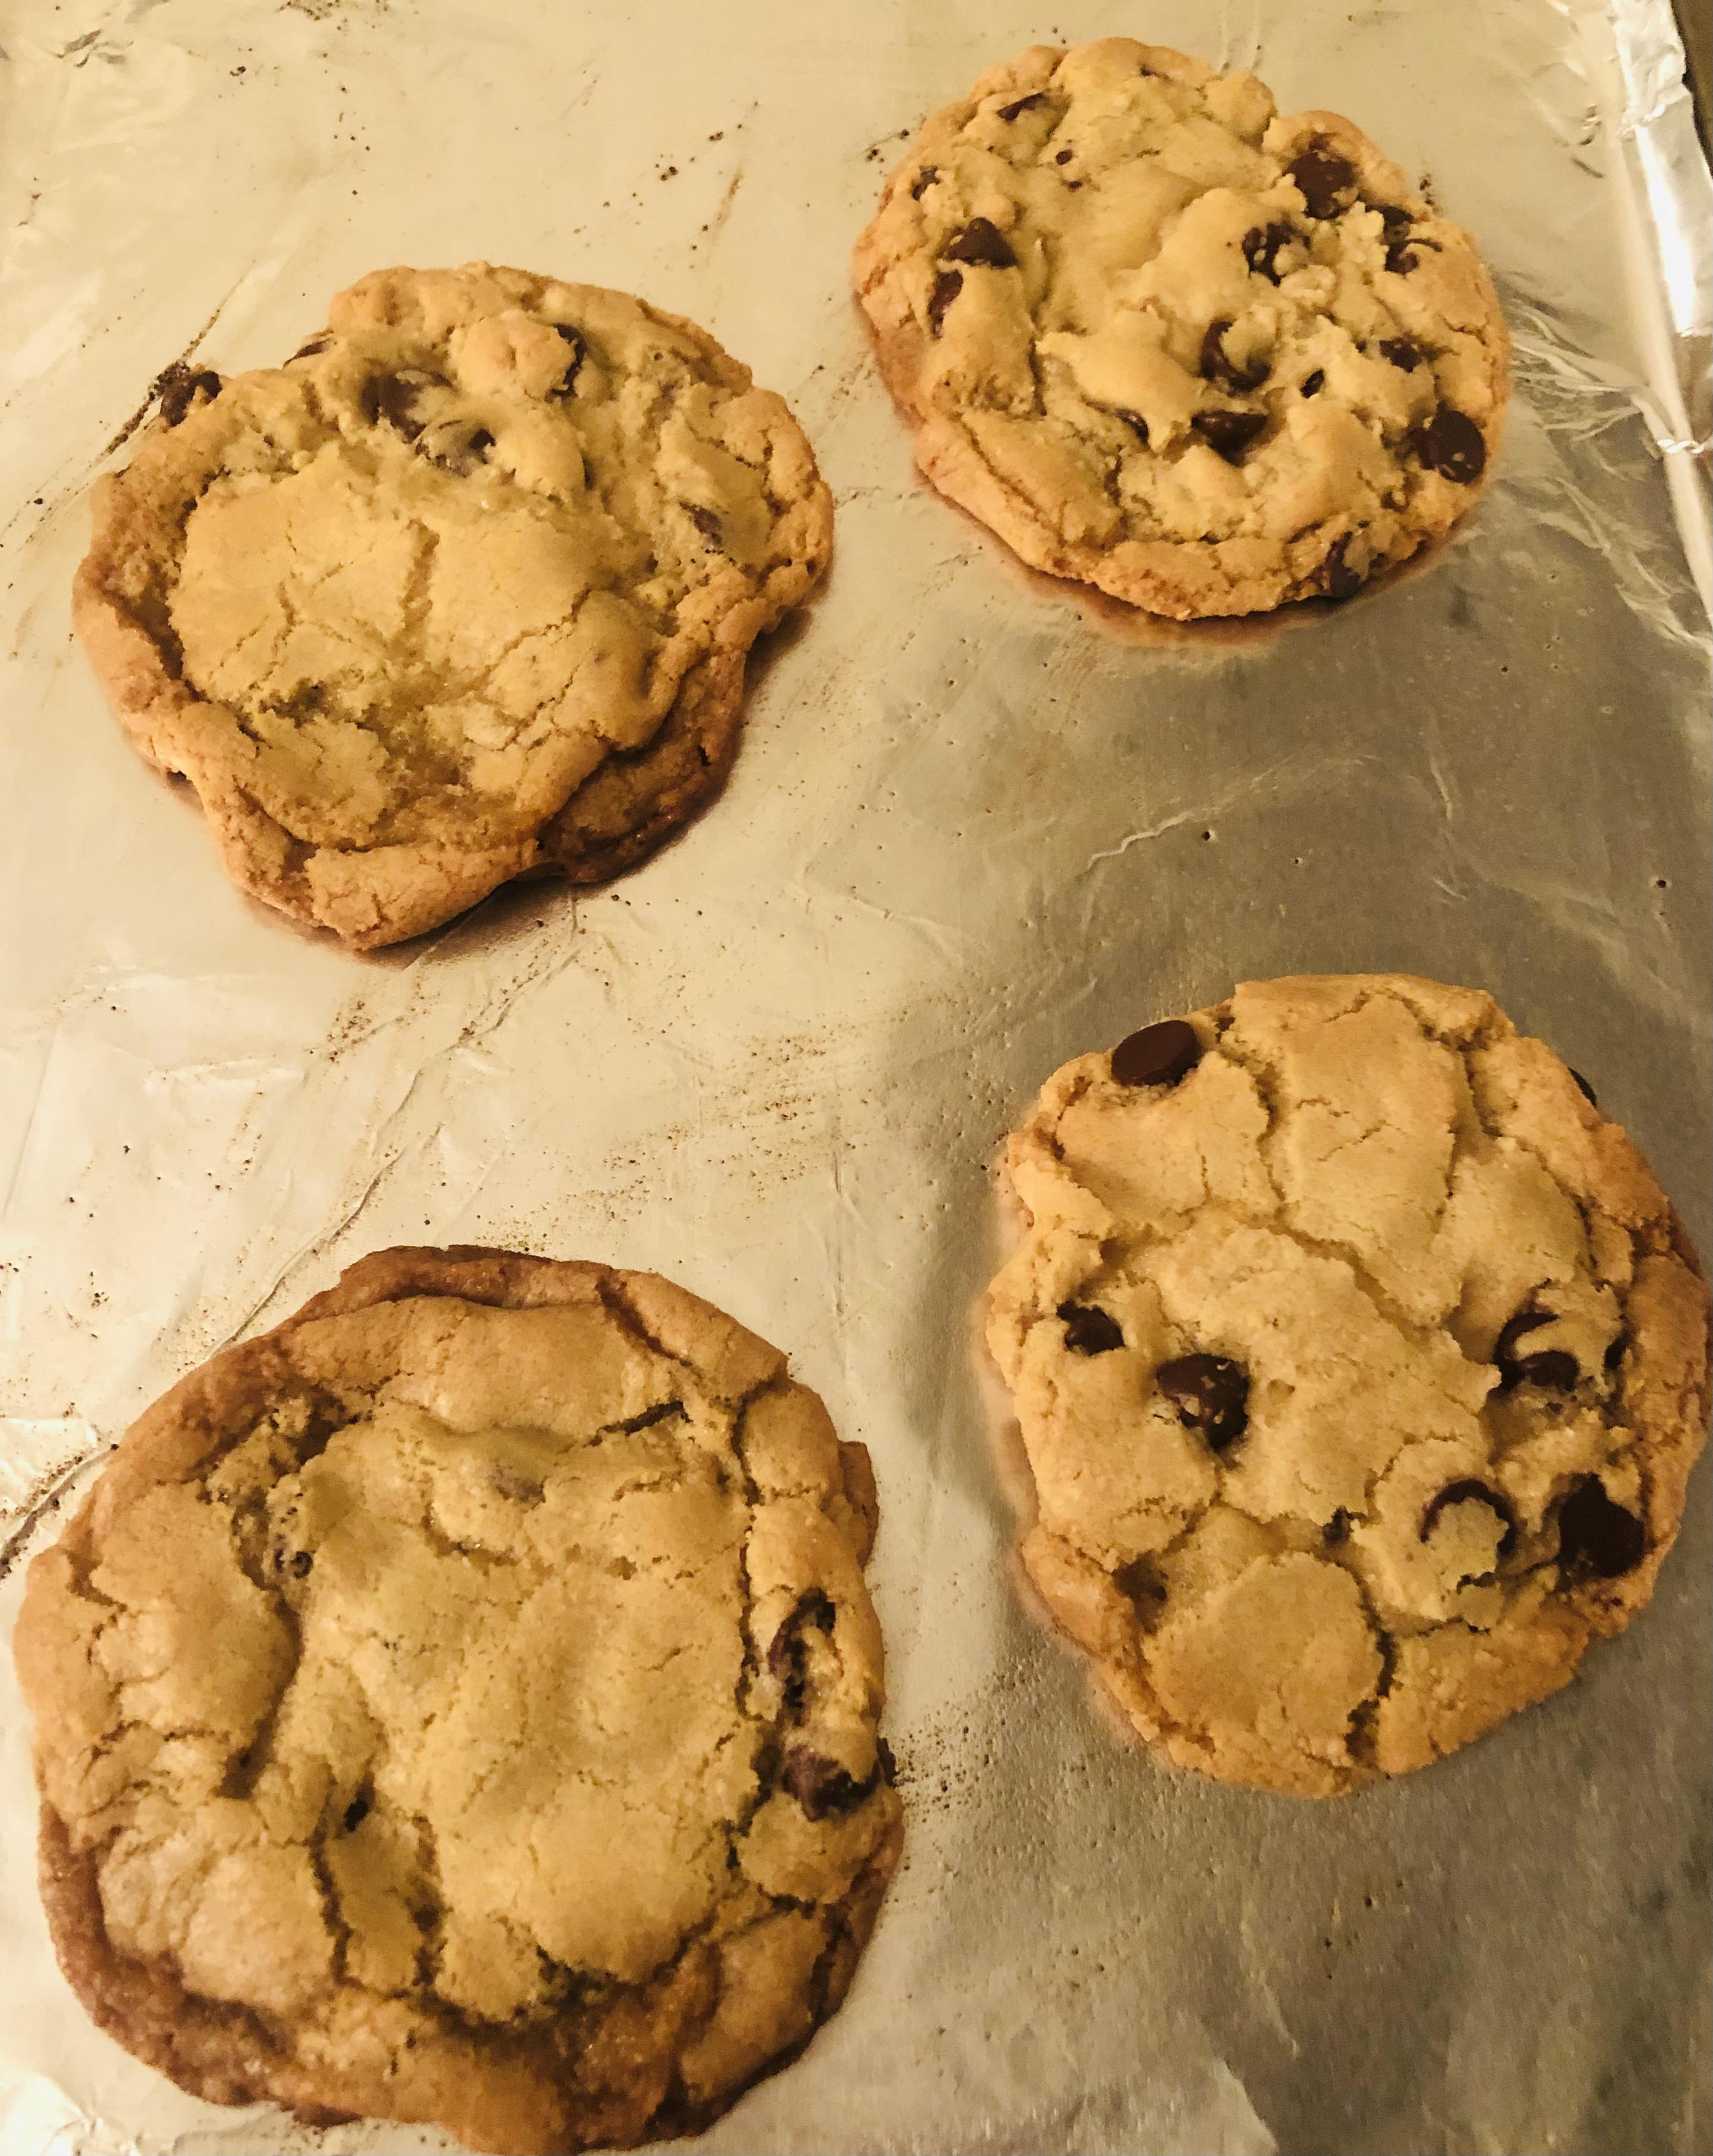 Chocolate chip cookies to celebrate 420 days alcohol-free!